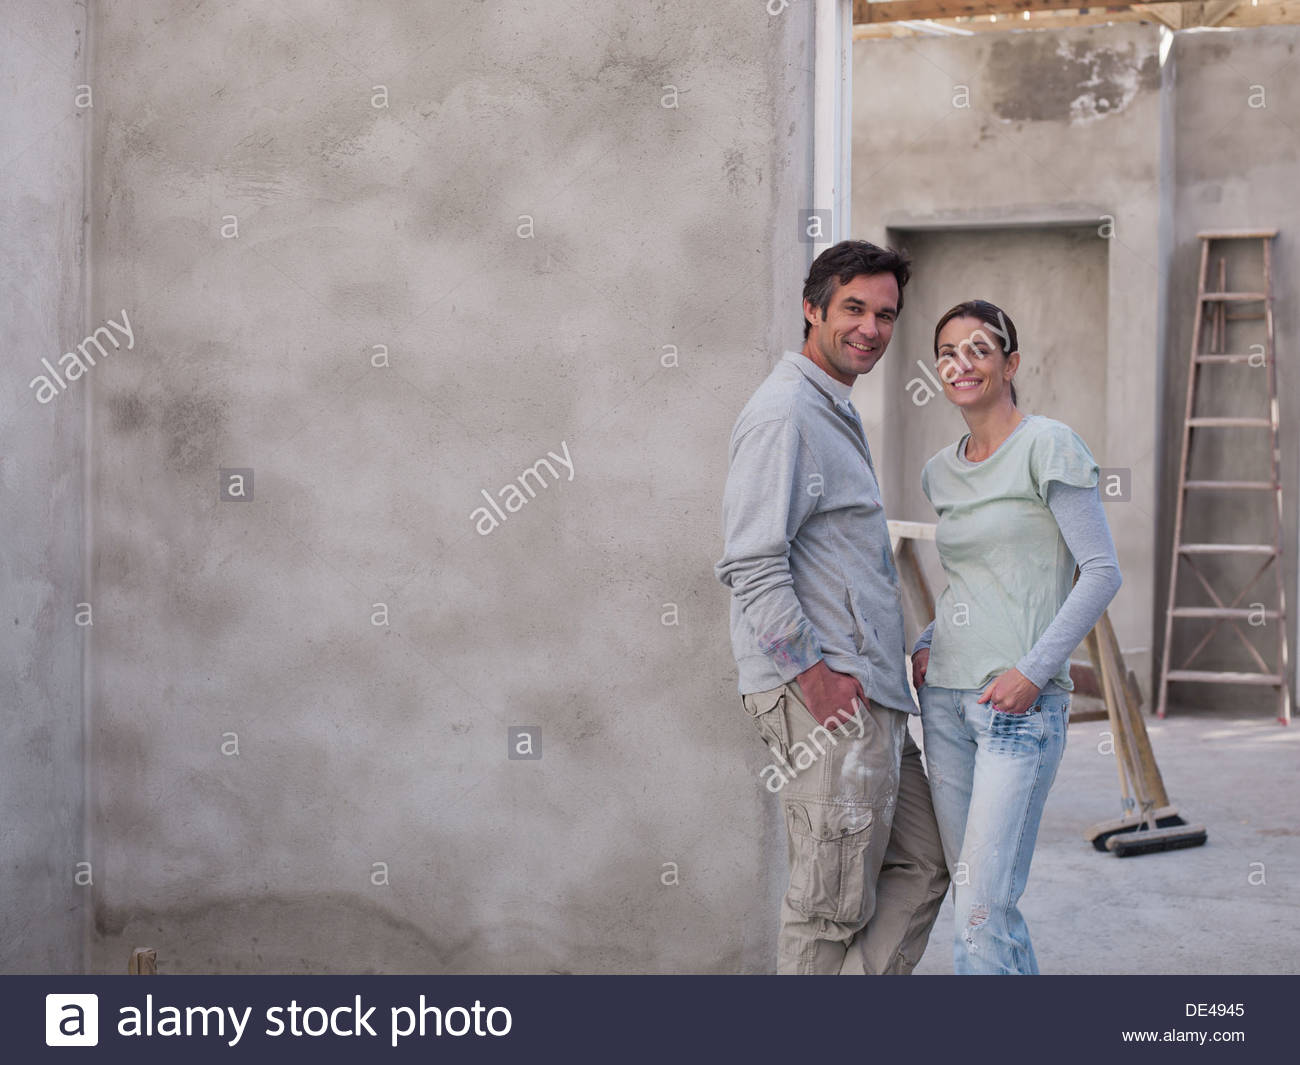 Couple in house under construction Photo Stock